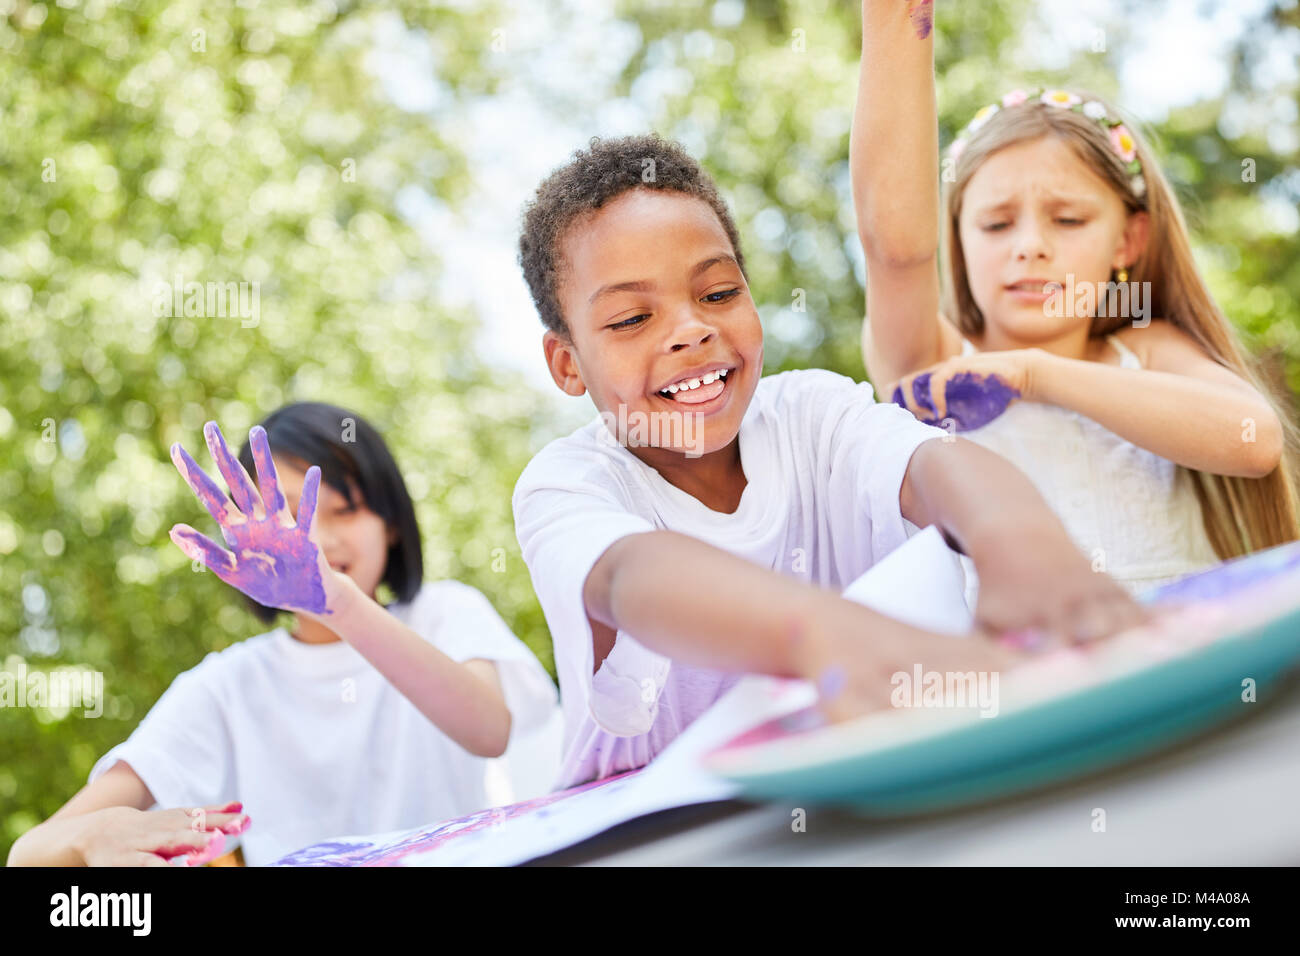 African boy plays and paints with finger paints with his friends - Stock Image